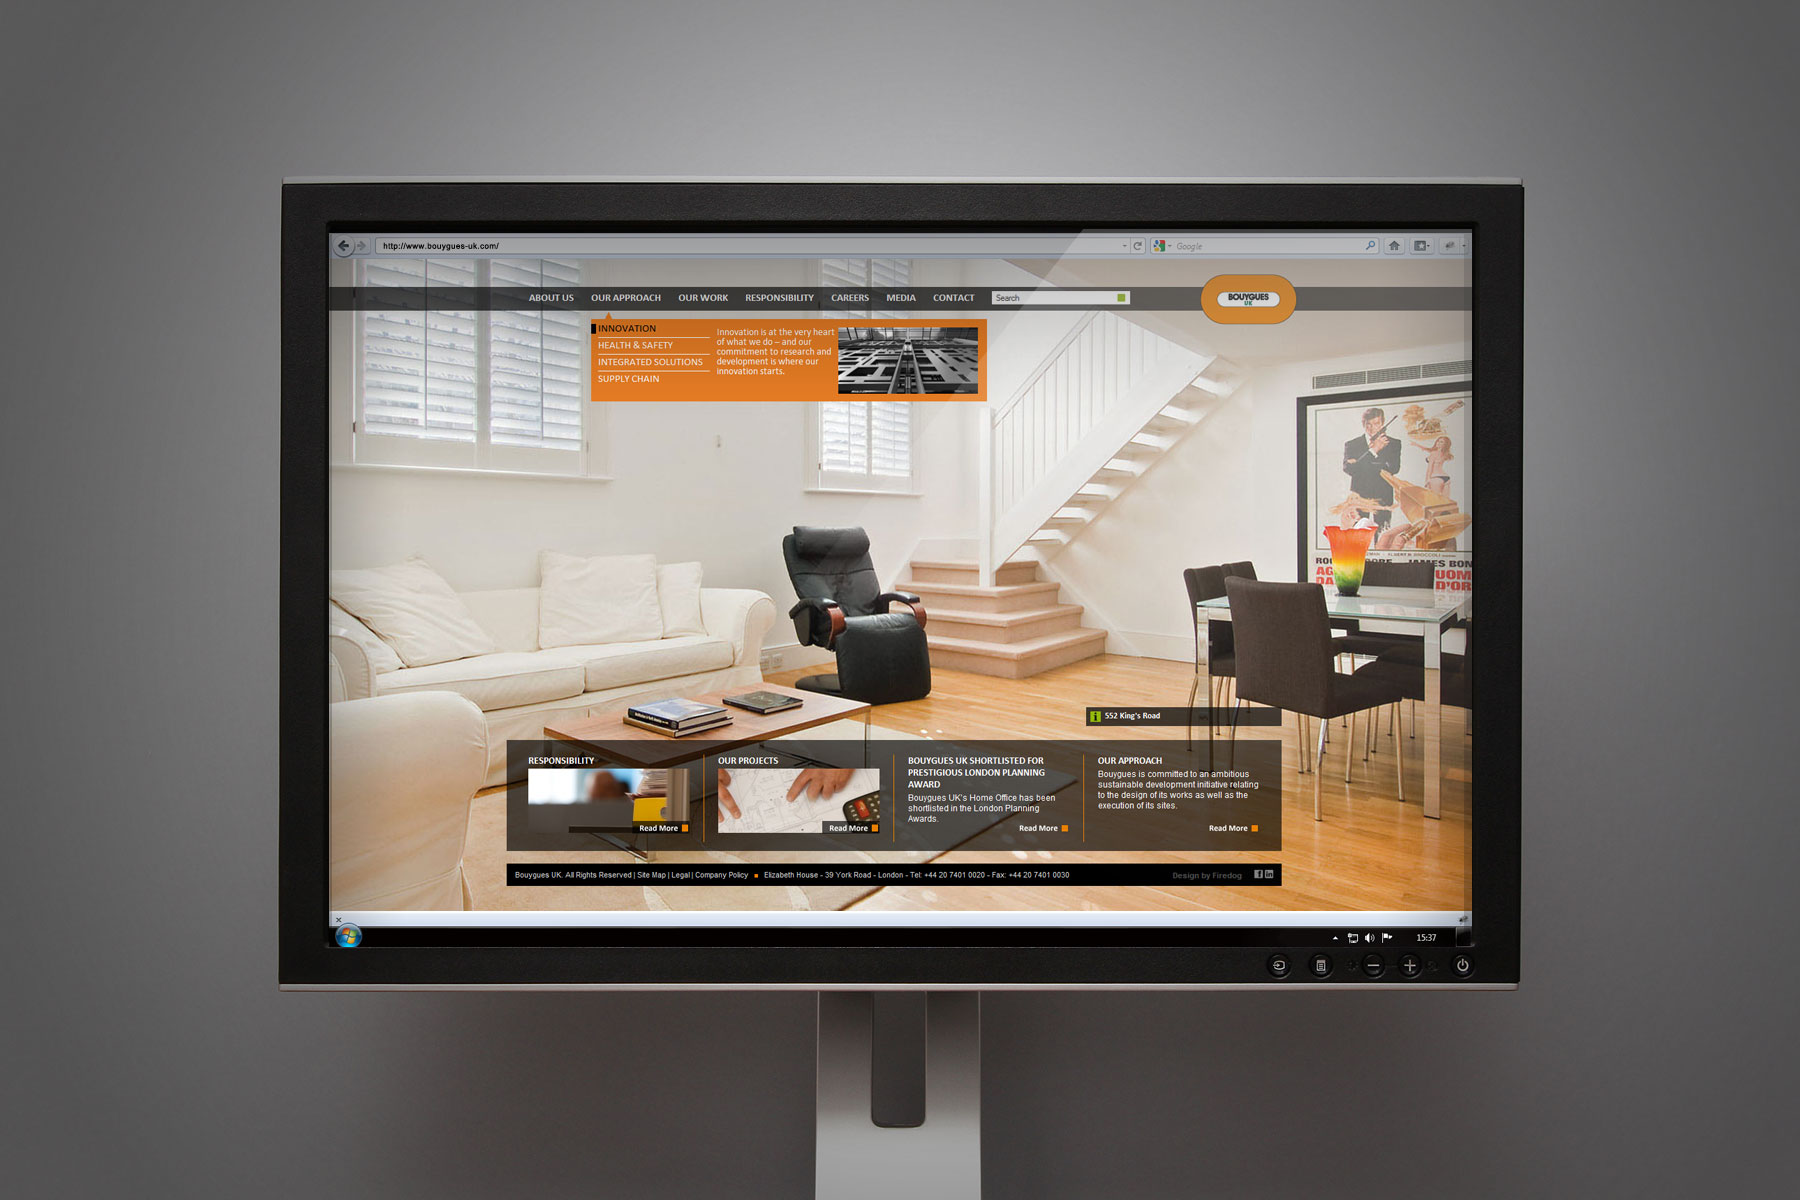 The resulting website harnesses a confident use of full screen imagery to project the quality behind the Bouygues product.